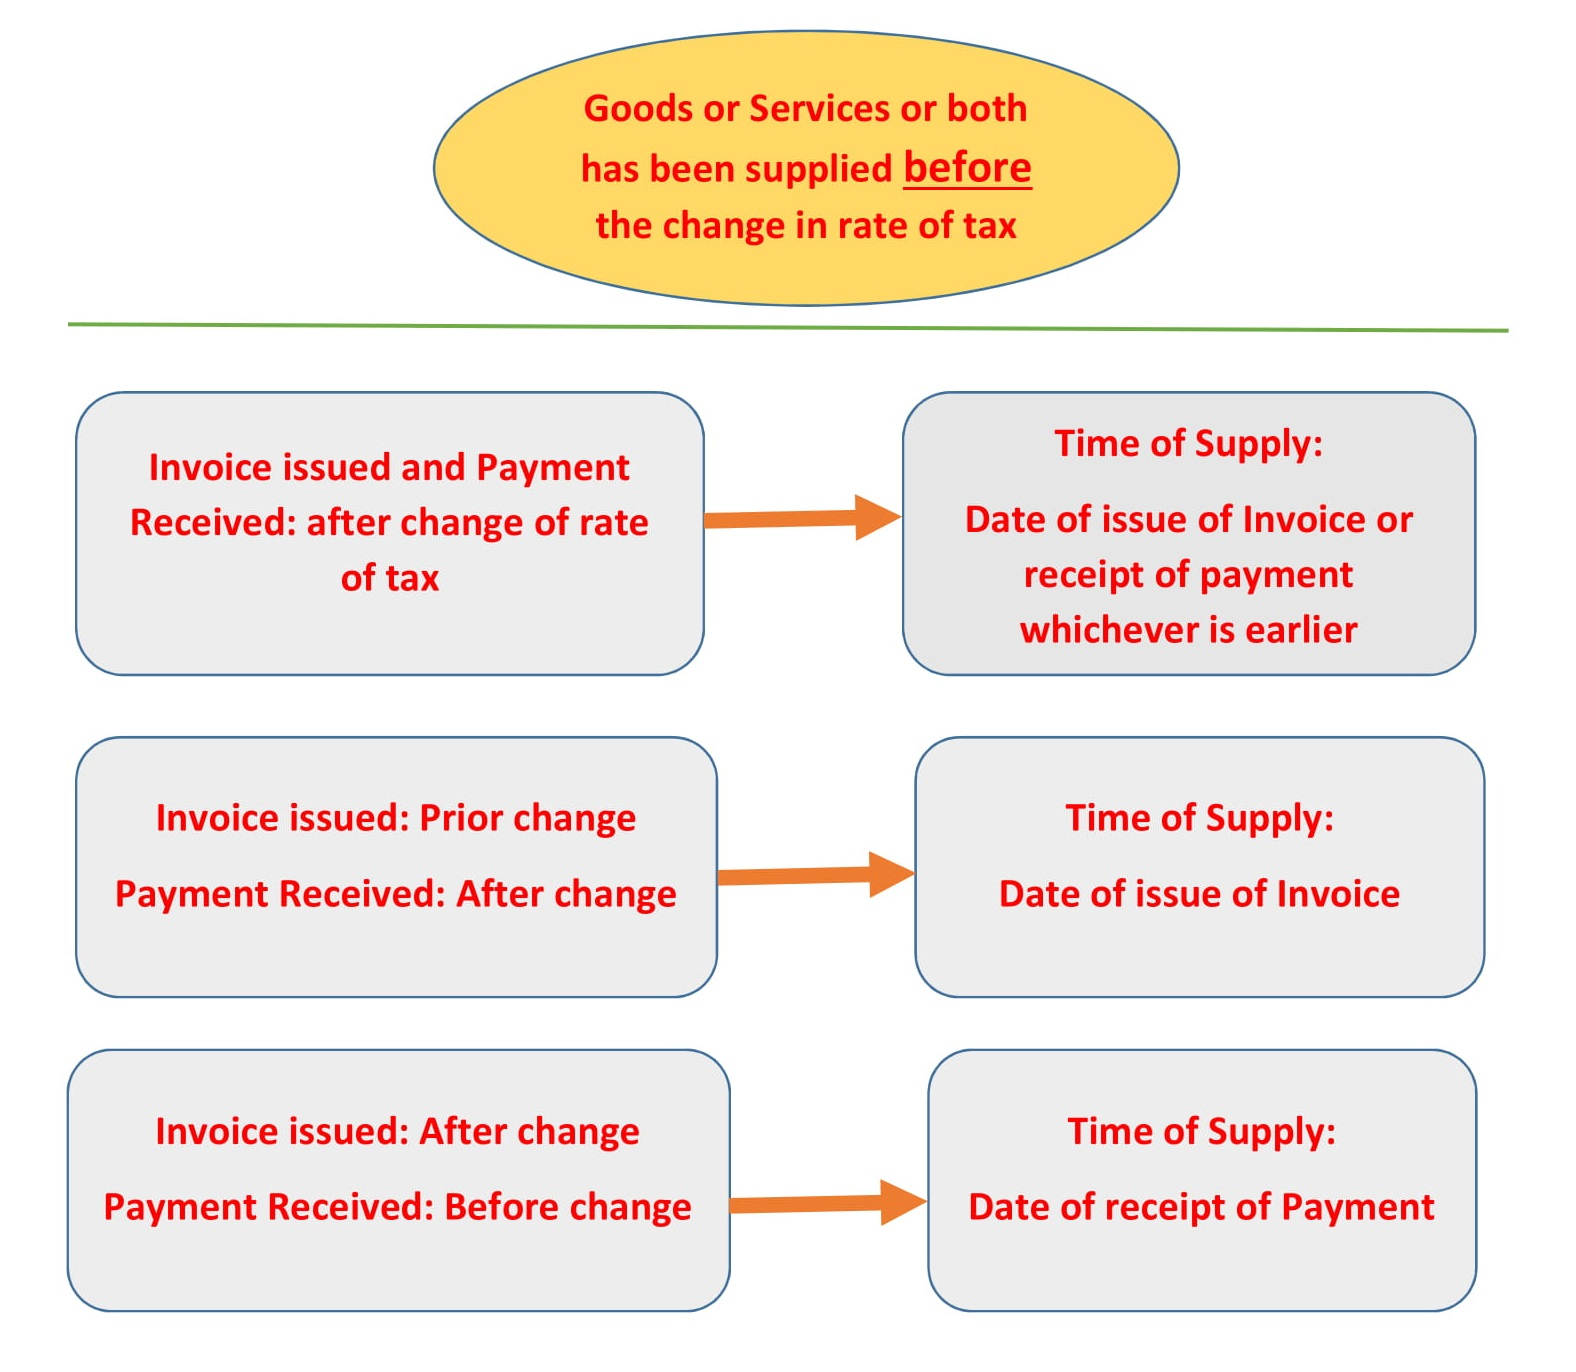 Change in rate of tax